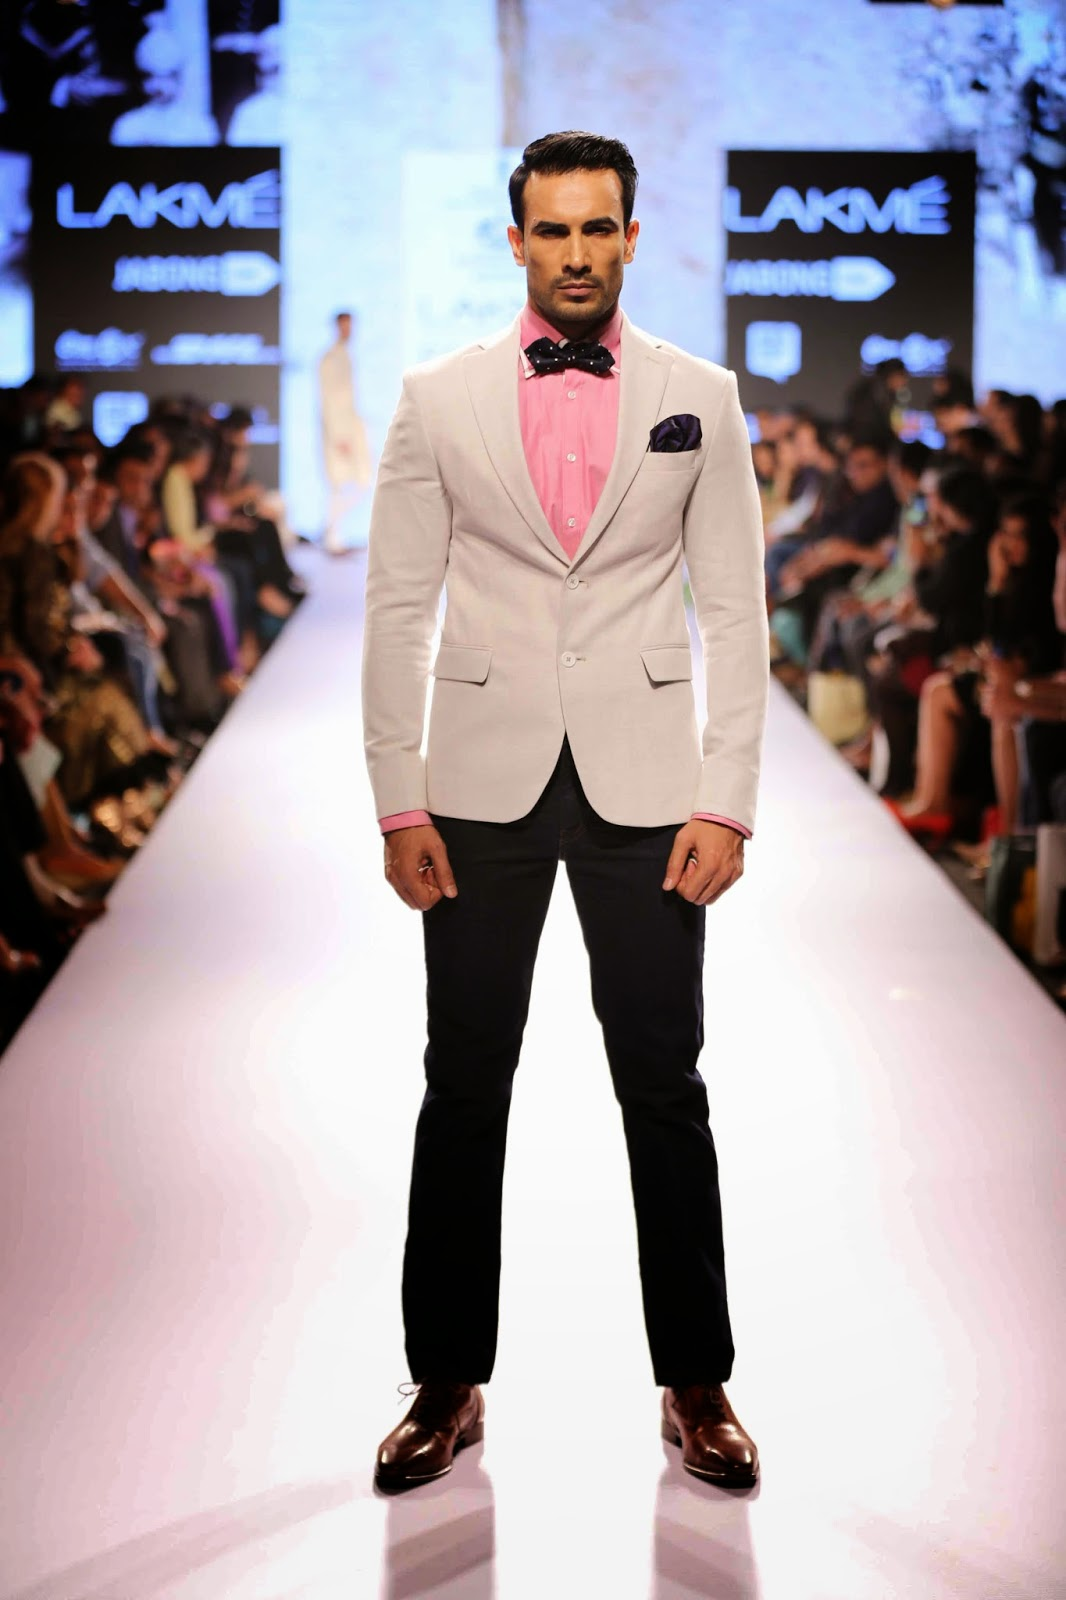 http://aquaintperspective.blogspot.in/, LIFW Day 2 , Raghvendra Rathore